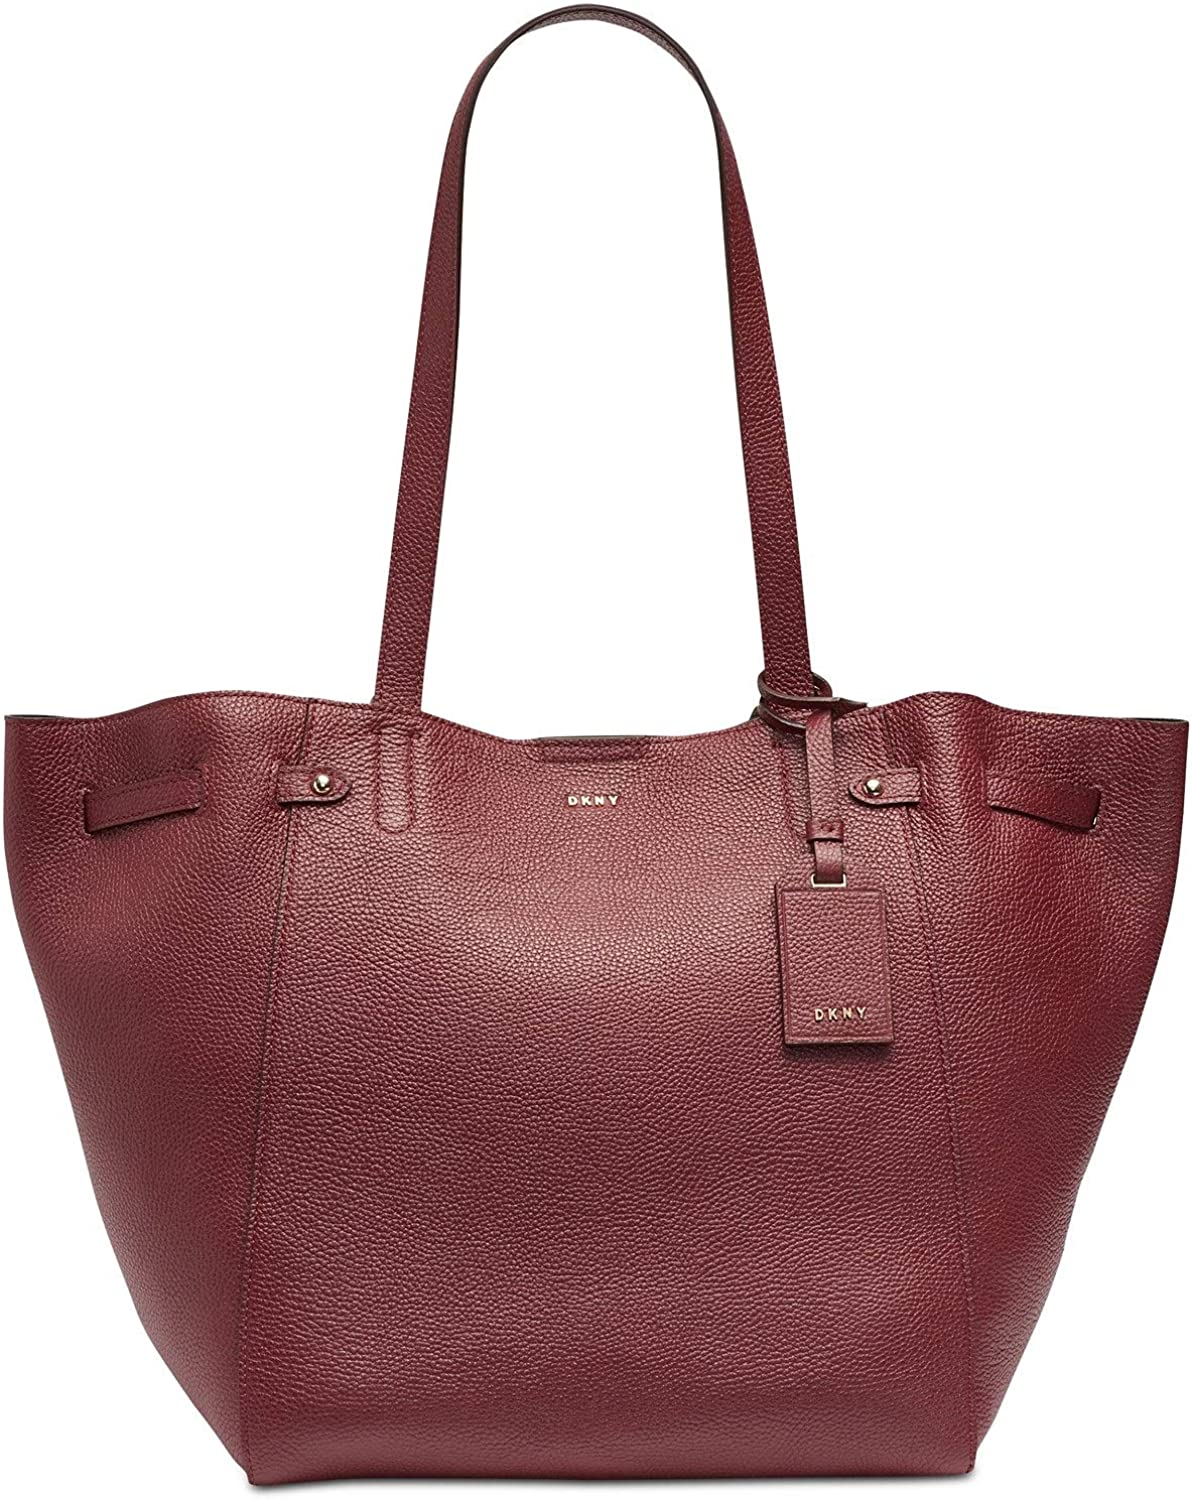 DKNY Ludlow Pebbled Leather Large Tote Travel Bag Blood Red